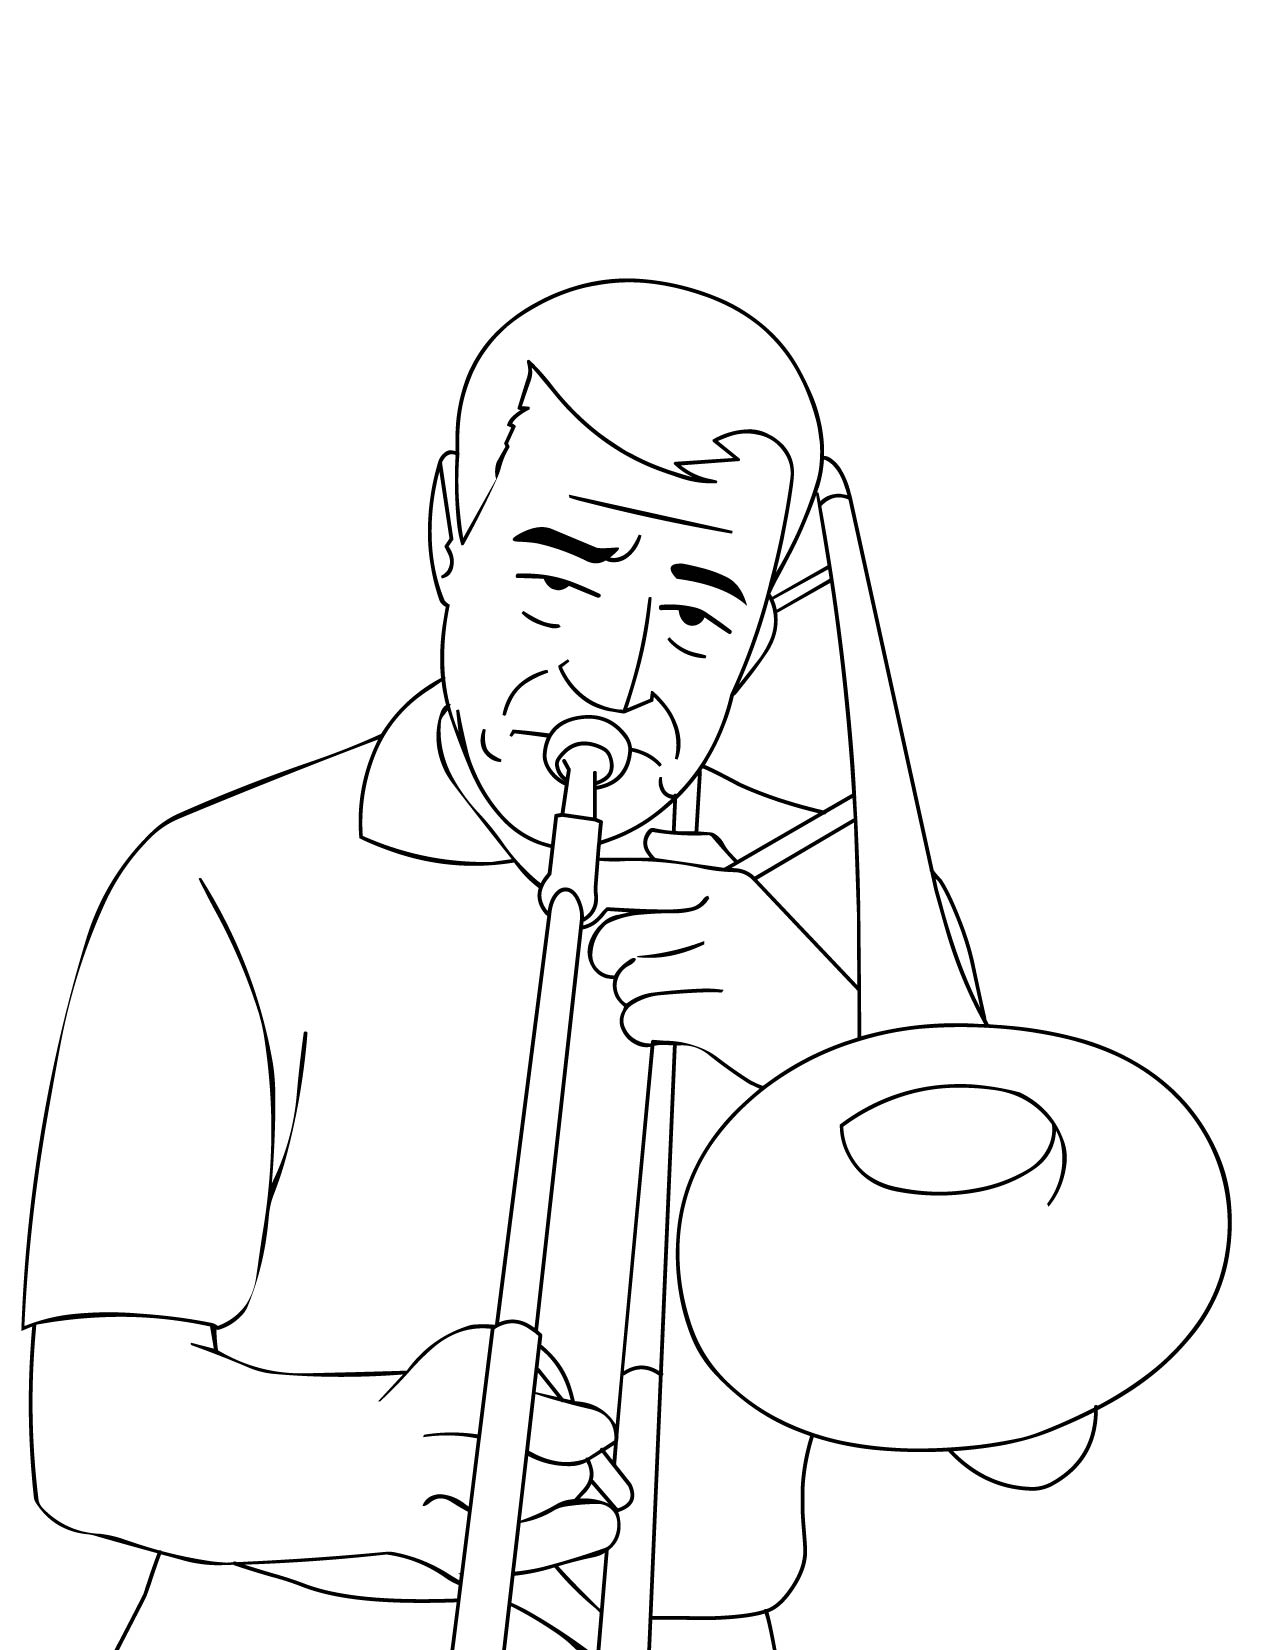 Trombone Coloring Page - Handipoints